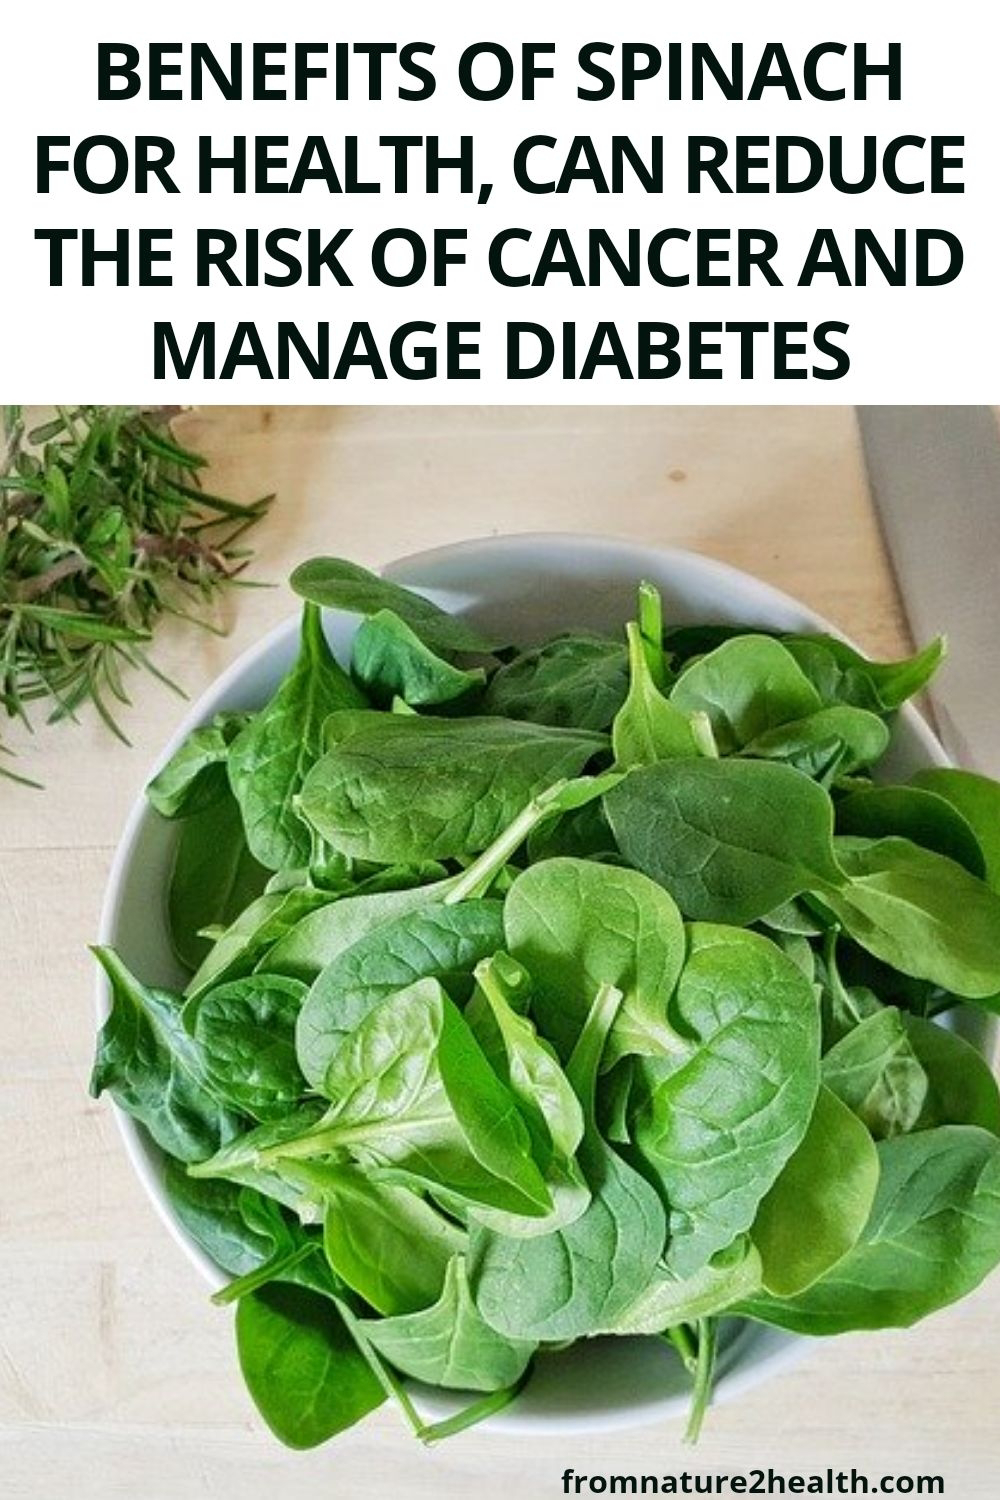 Benefits of Spinach for Health, Can Reduce the Risk of Cancer and Manage Diabetes